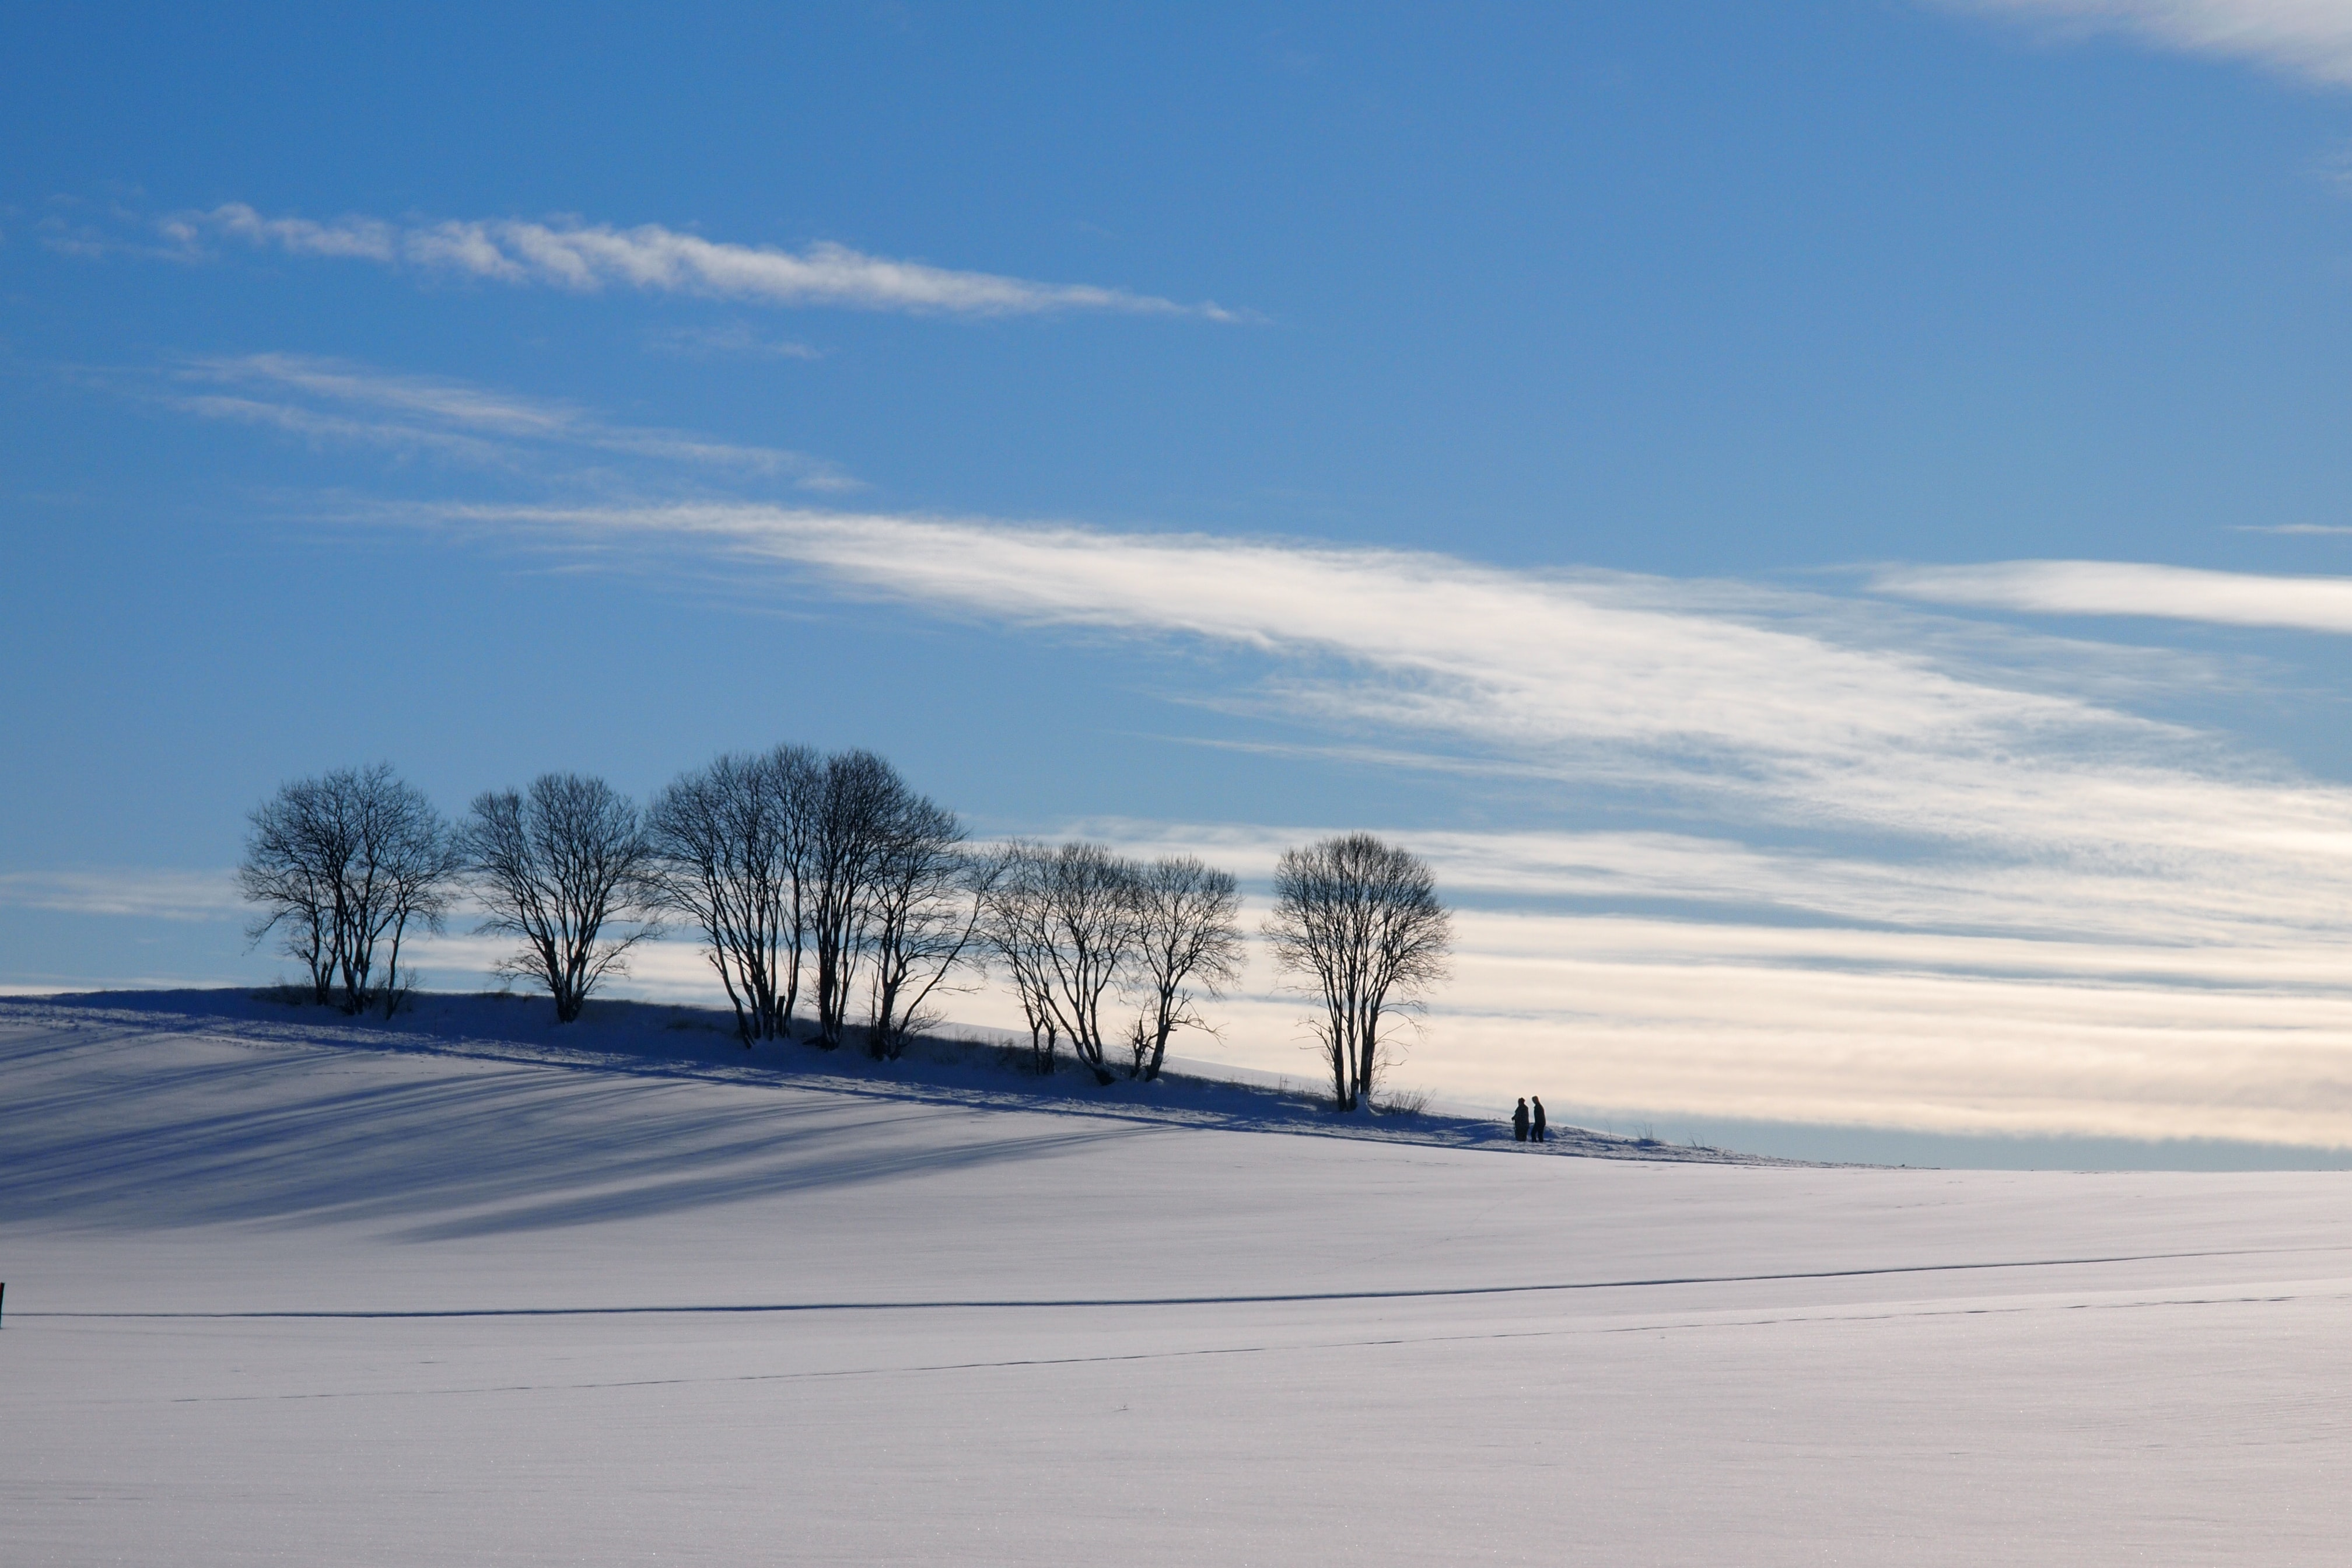 bare trees on snow covered ground